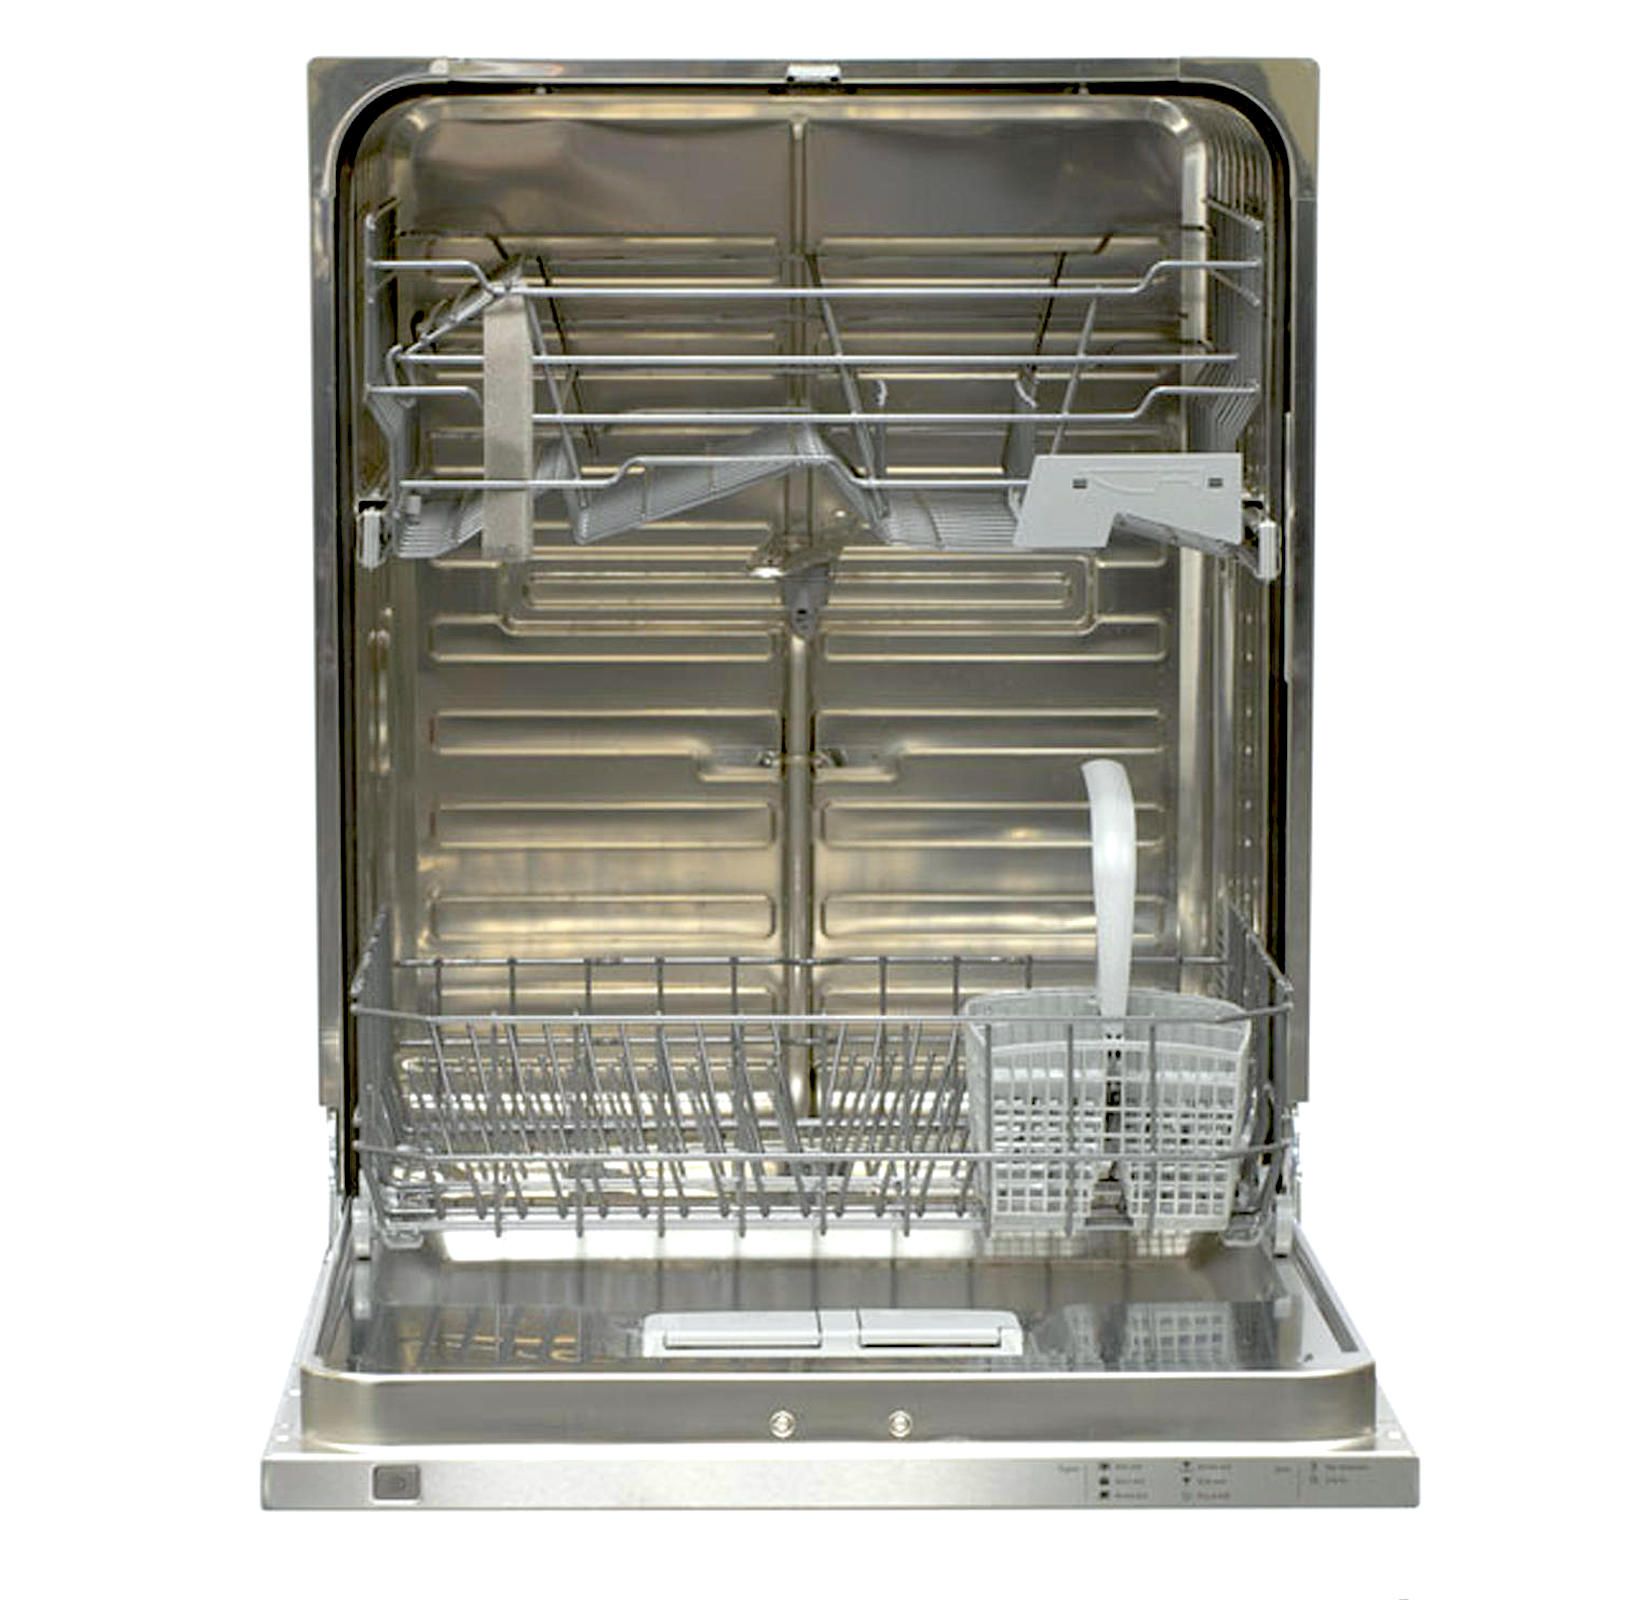 "Dacor Distinctive™ 24"" Dishwasher - Stainless Steel"